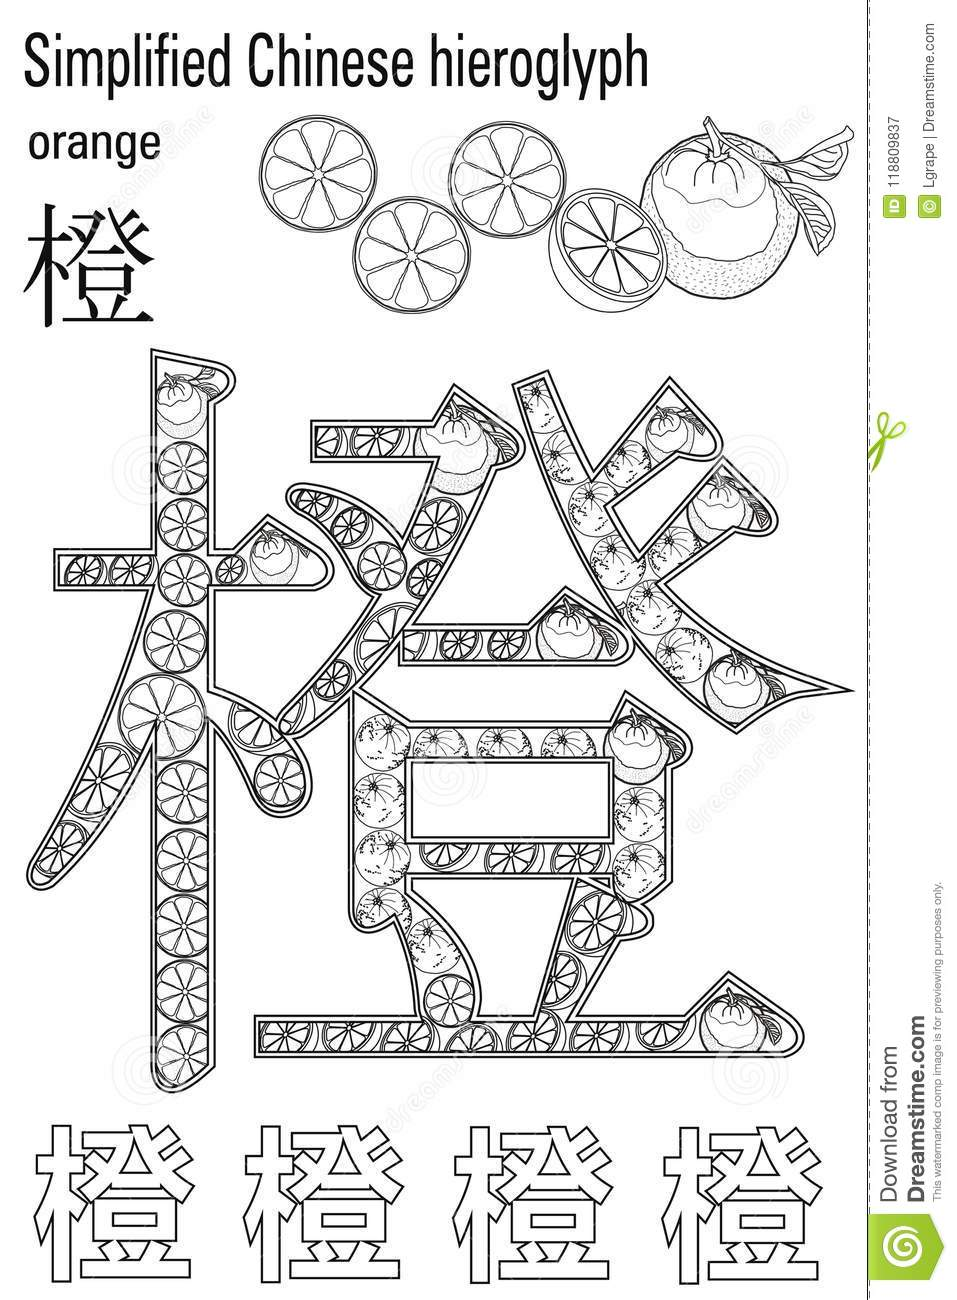 Color Therapy A Anti Stress Coloring Book Chinese Hieroglyph